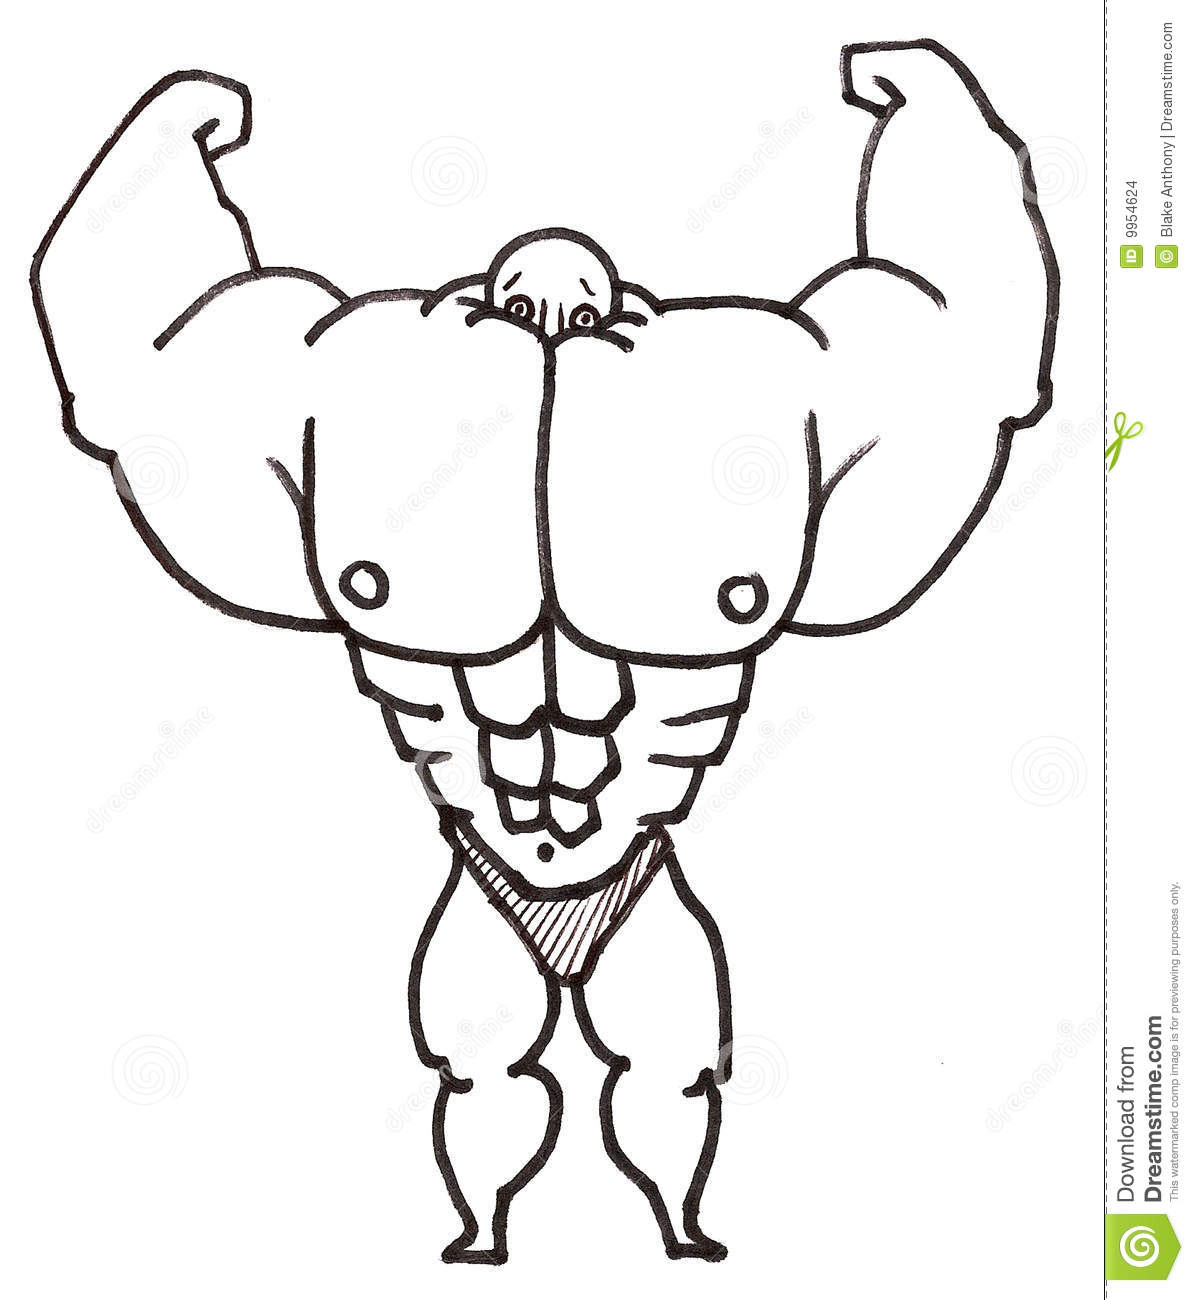 Muscle Man Stock Images - Image: 9954624